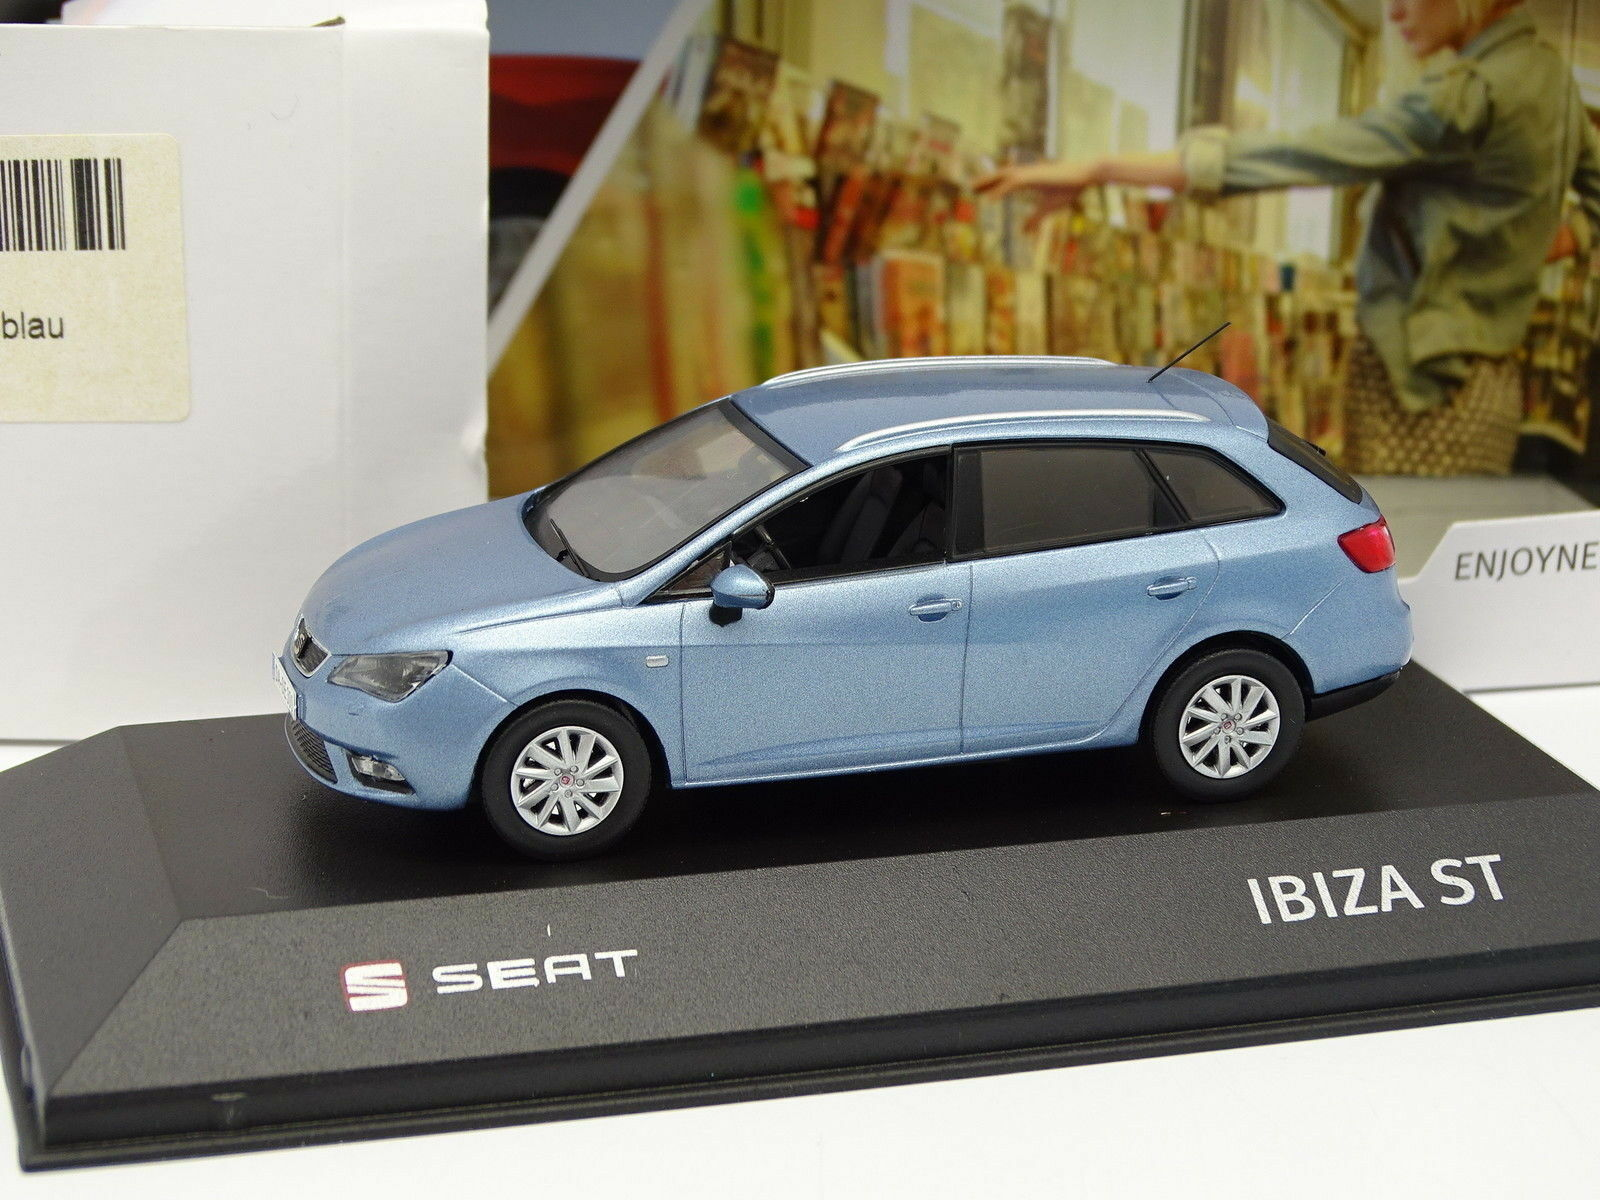 J Collection 1 43 - Seat Ibiza st azul